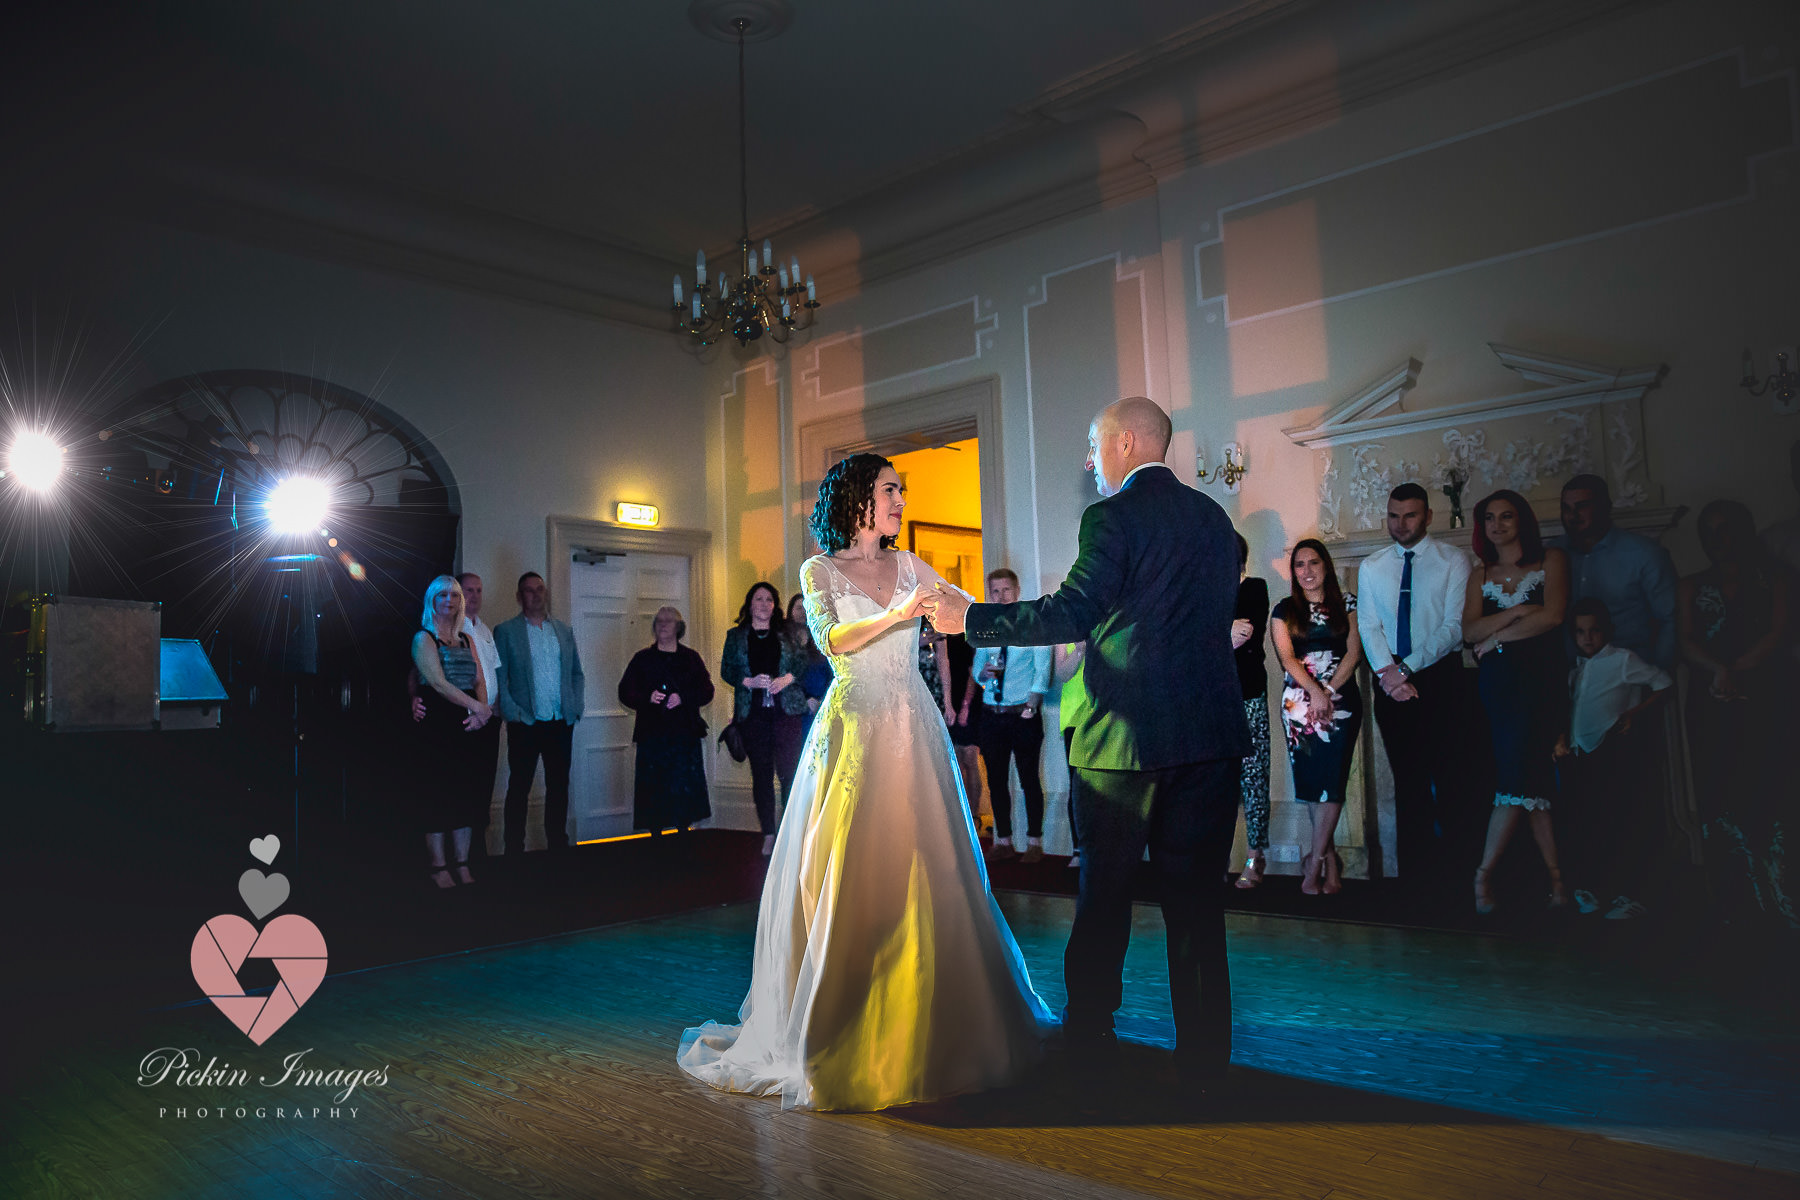 First dance at East Wood park in Gloucestershire. wedding photographer in Swindon, Wiltshire